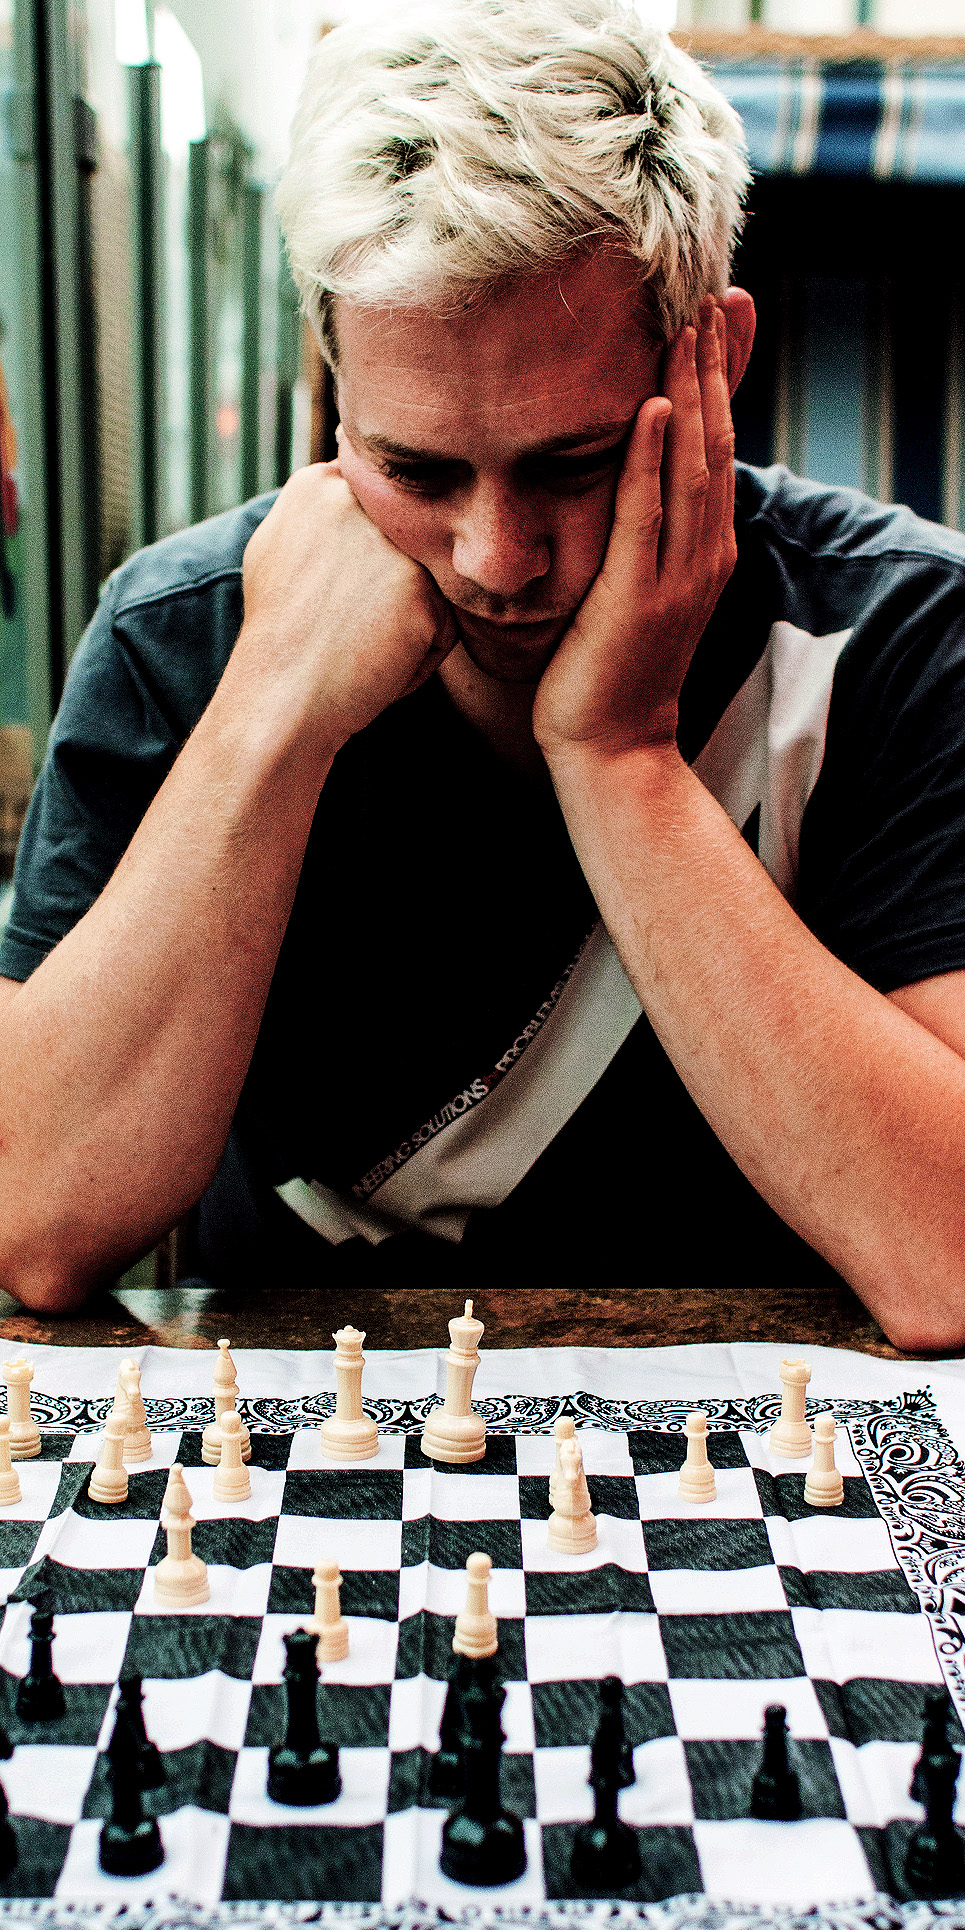 Man contemplating a chess board.